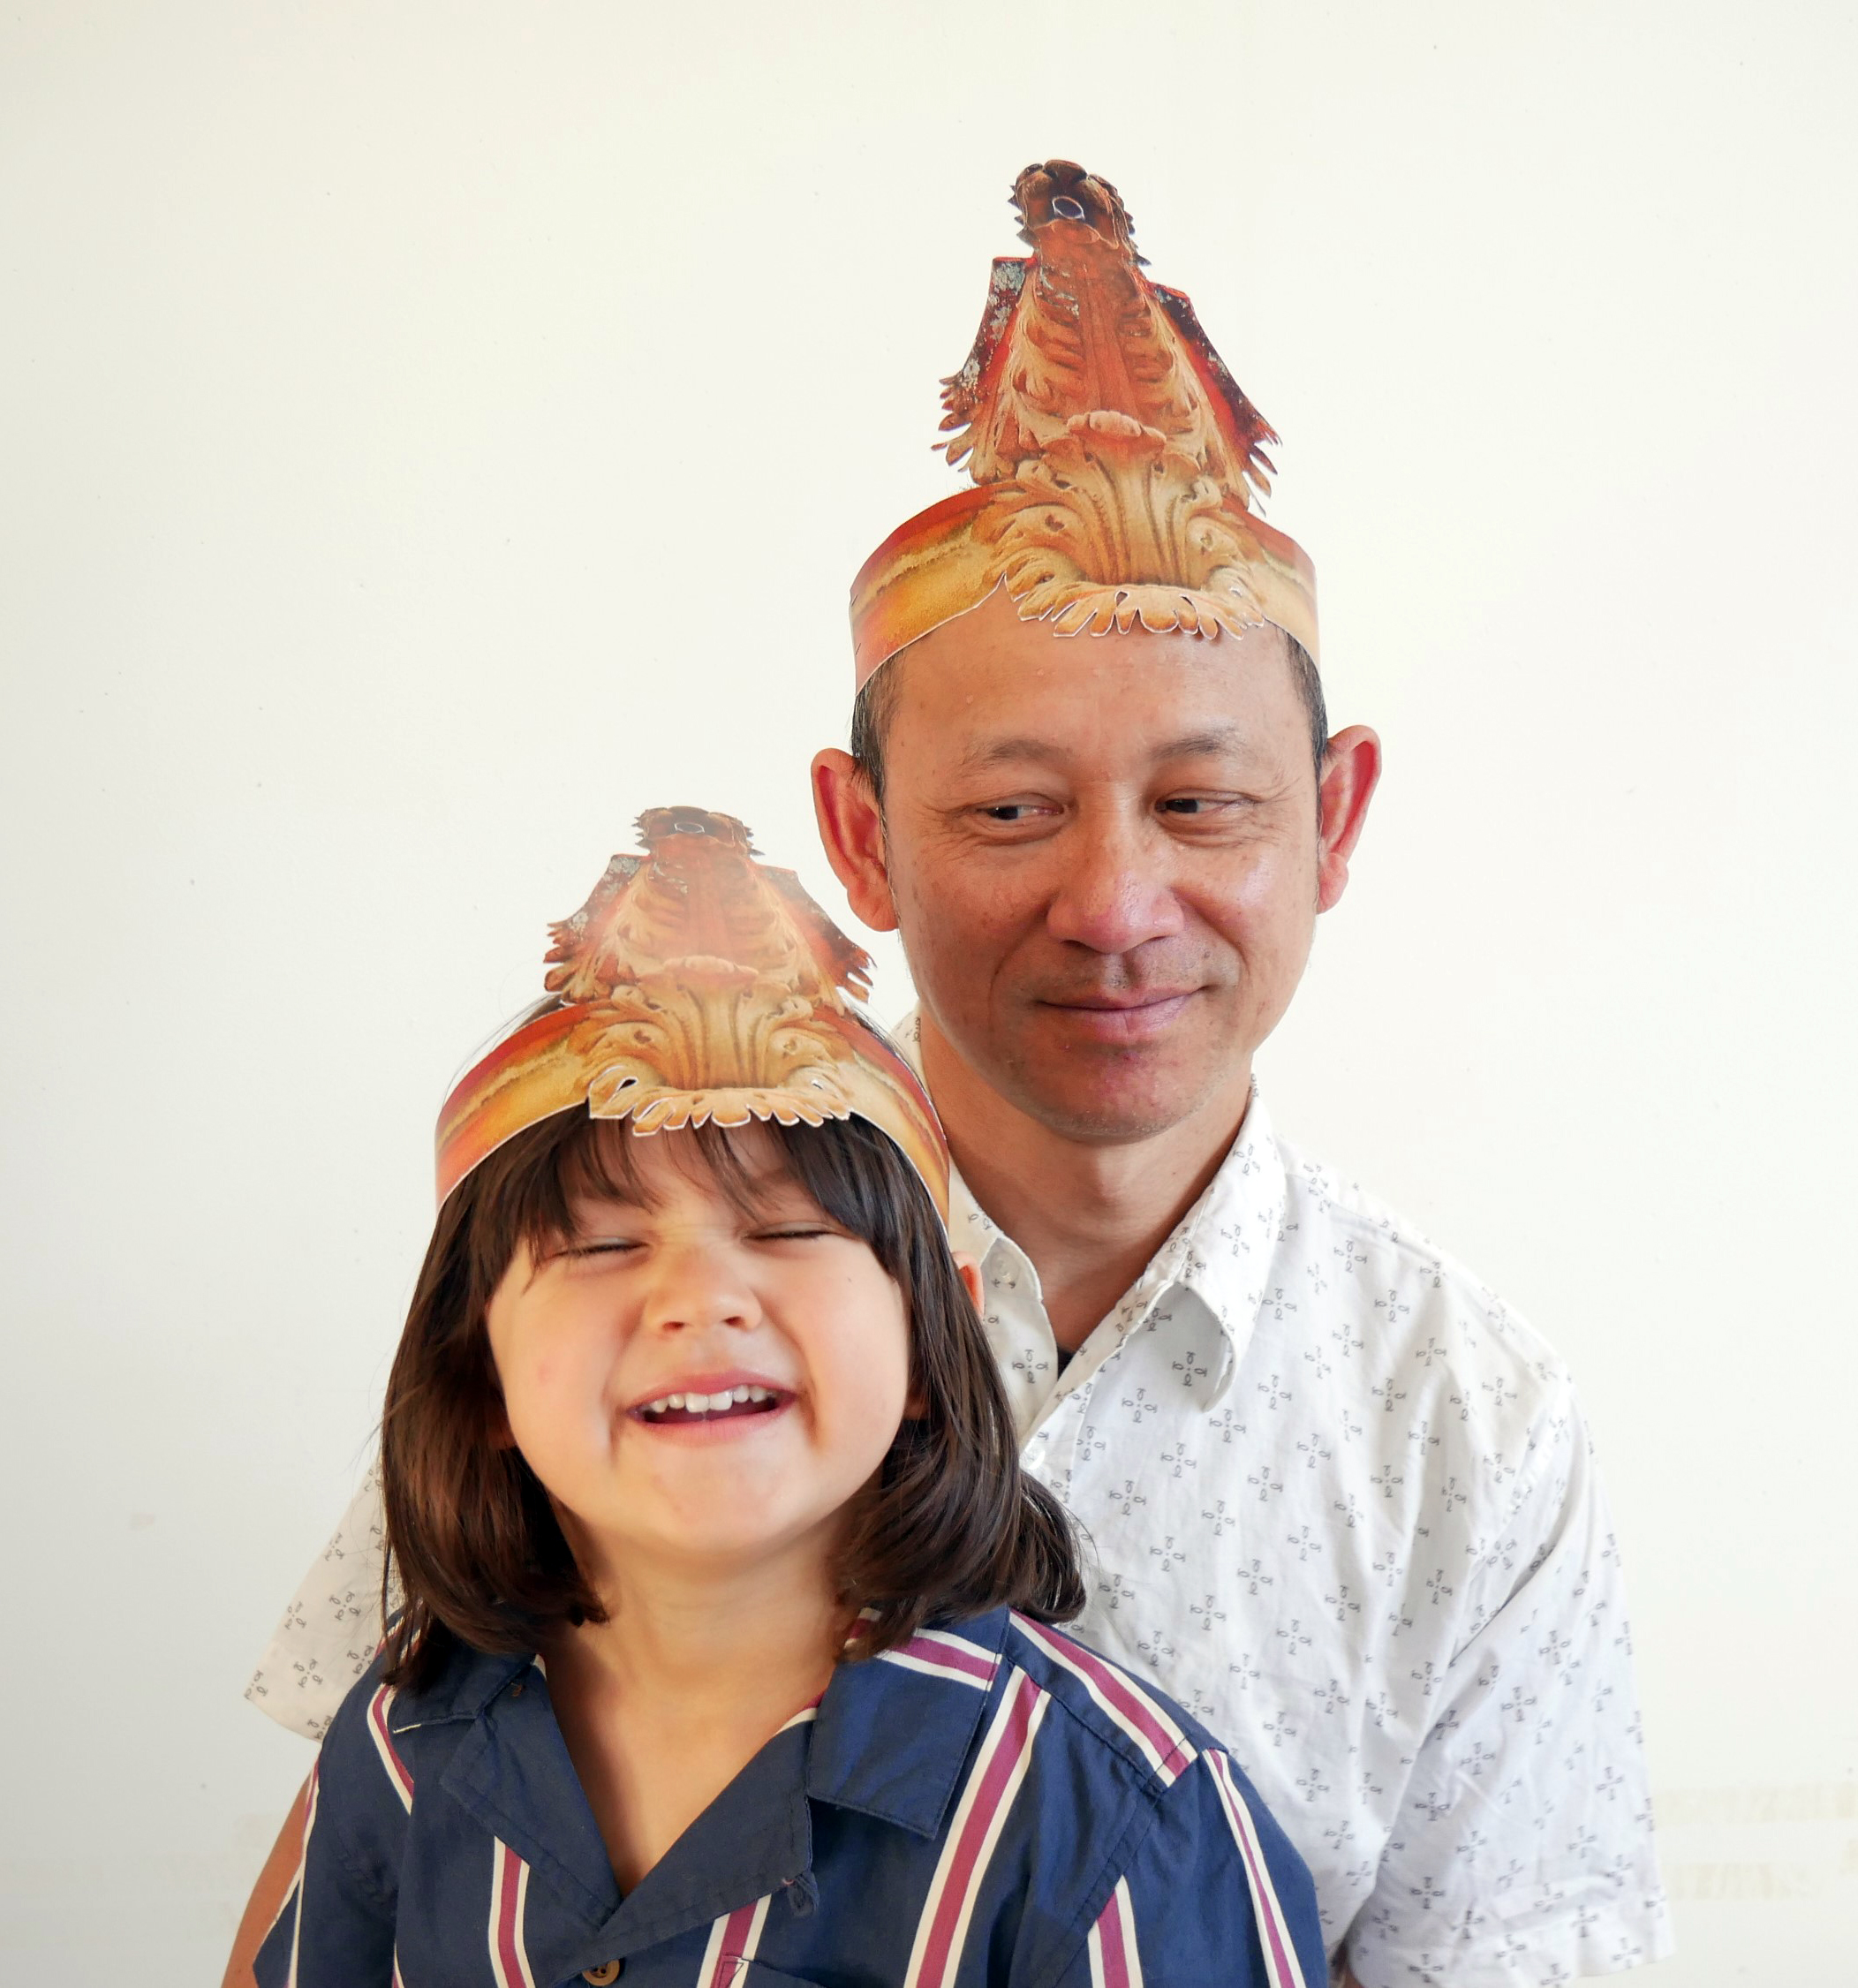 Somchai and Charlie wearing party hats